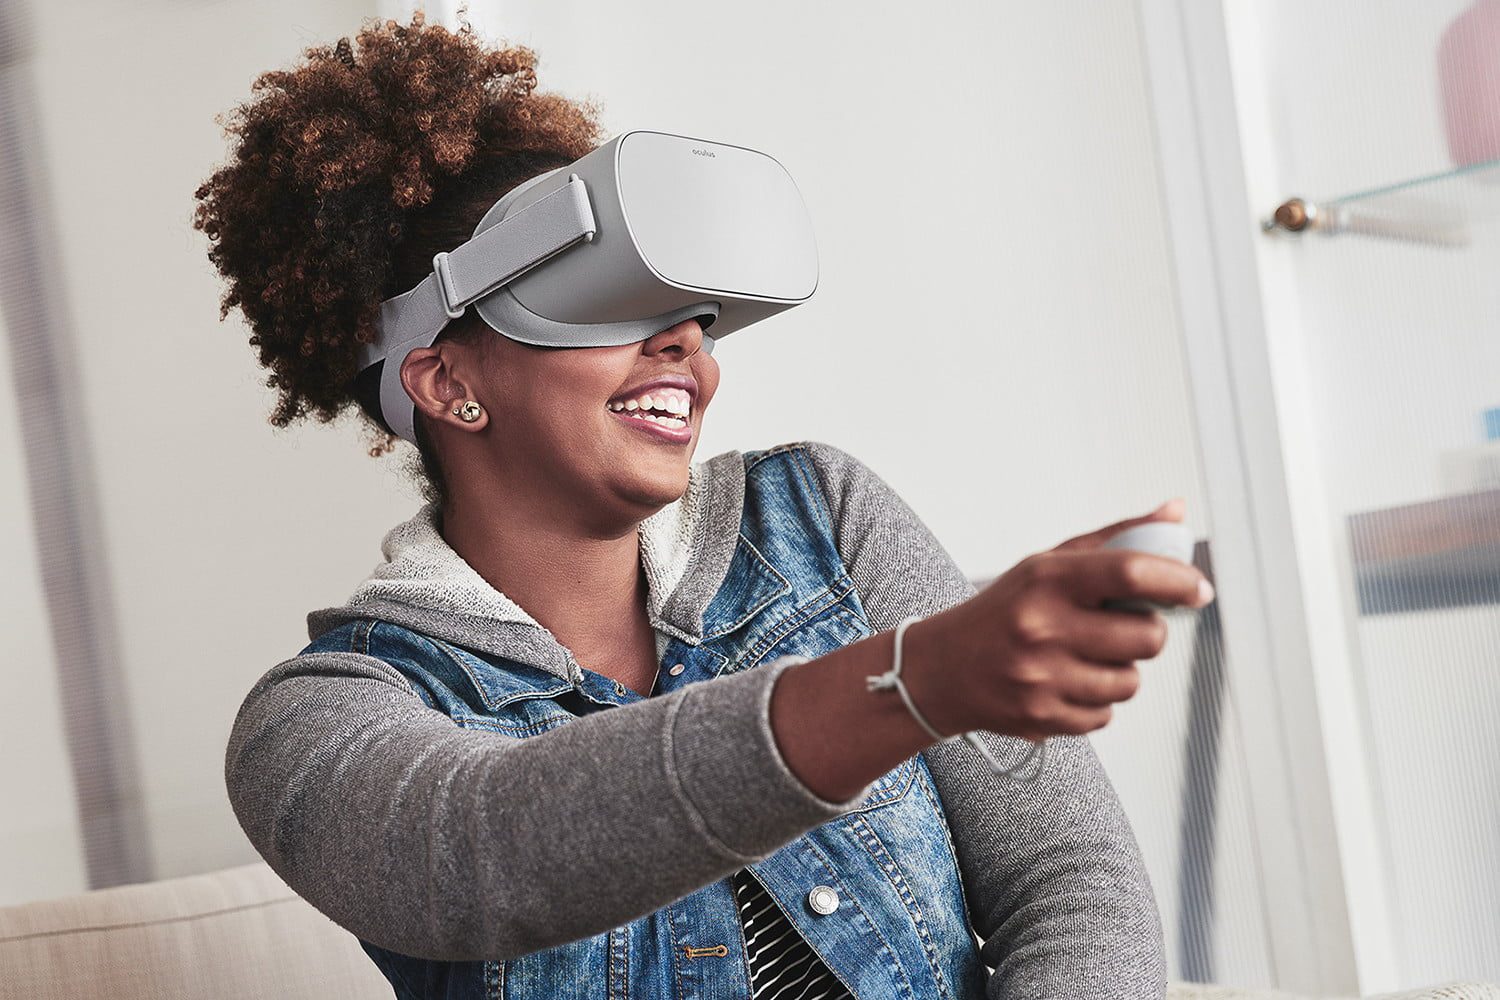 More Than 1,000 VR Experiences Are Available for the Oculus